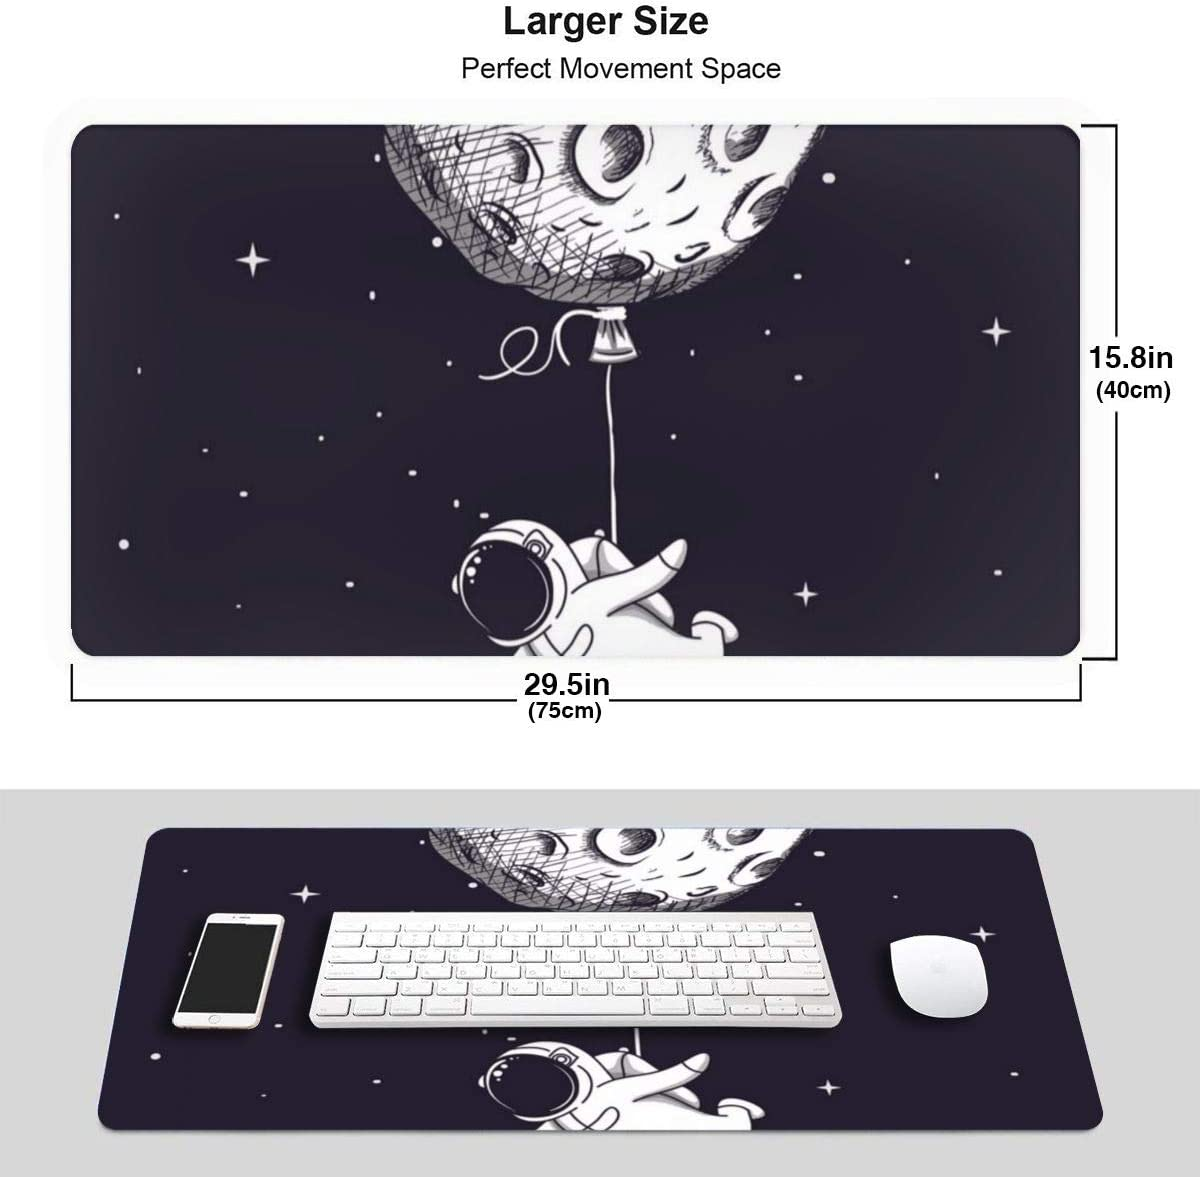 Draw A Cute Astronaut Design Pattern XXL XL Large Gaming Mouse Pad Mat Long Extended Mousepad Desk Pad Non-Slip Rubber Mice Pads Stitched Edges 29.5x15.7x0.12 Inch